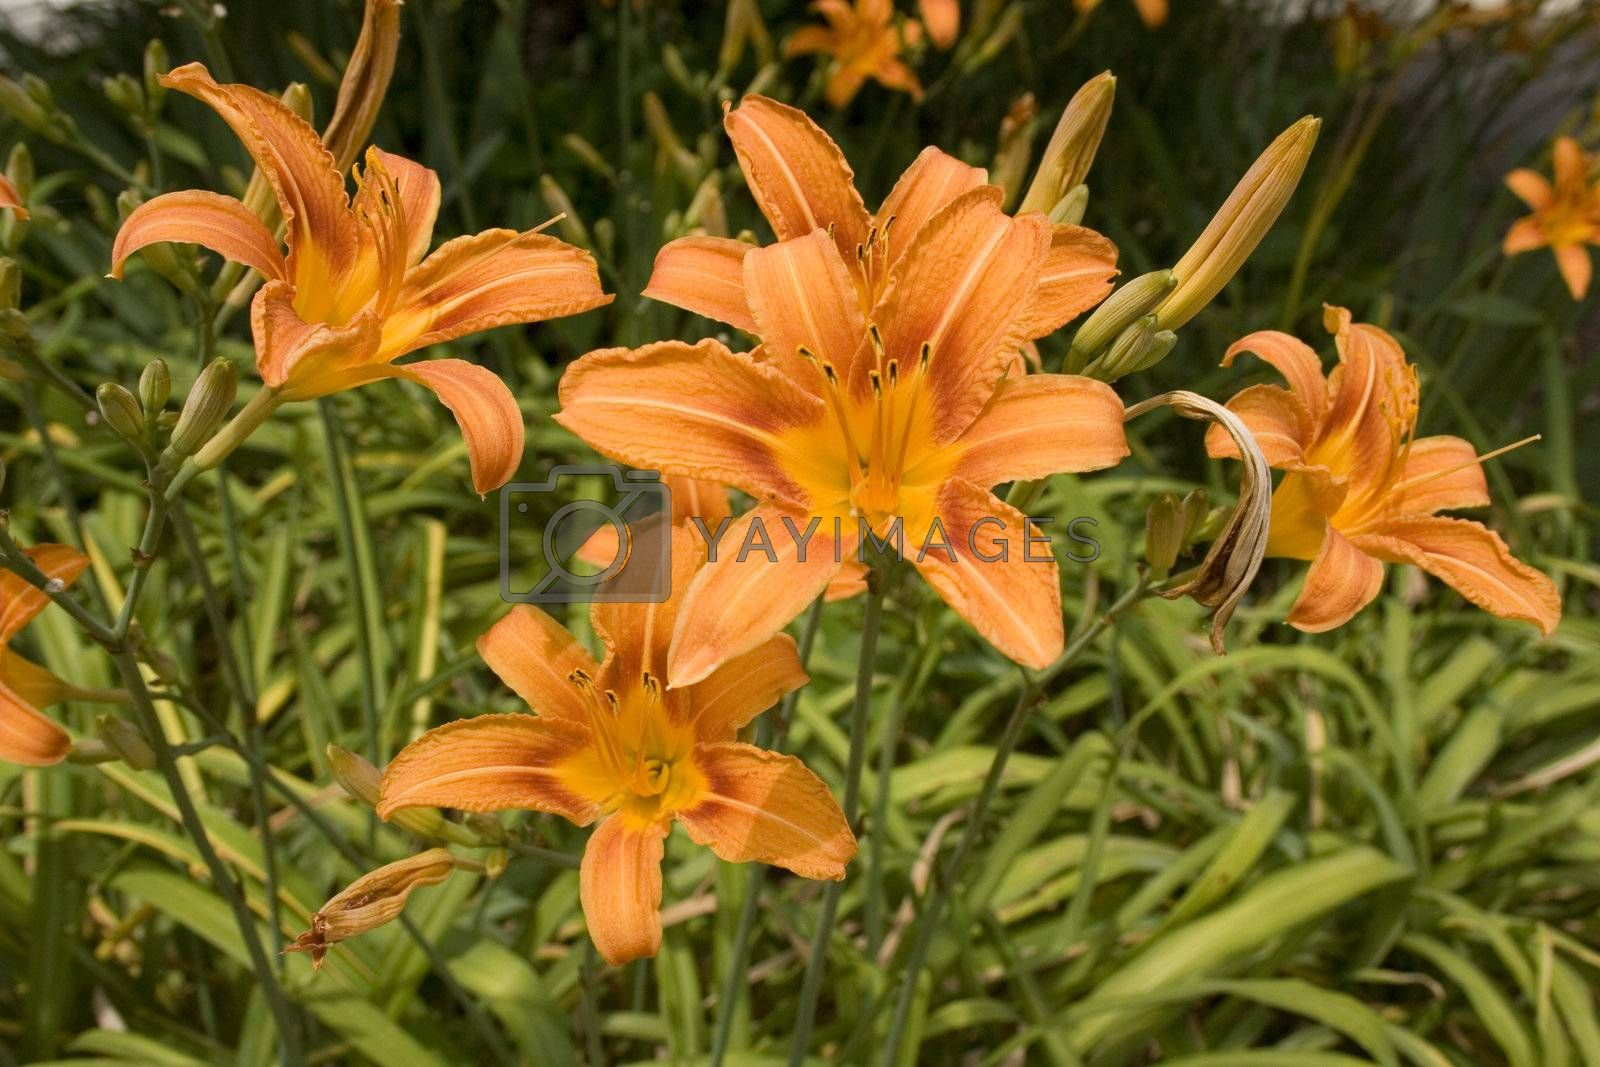 A group of blooming daylilies.